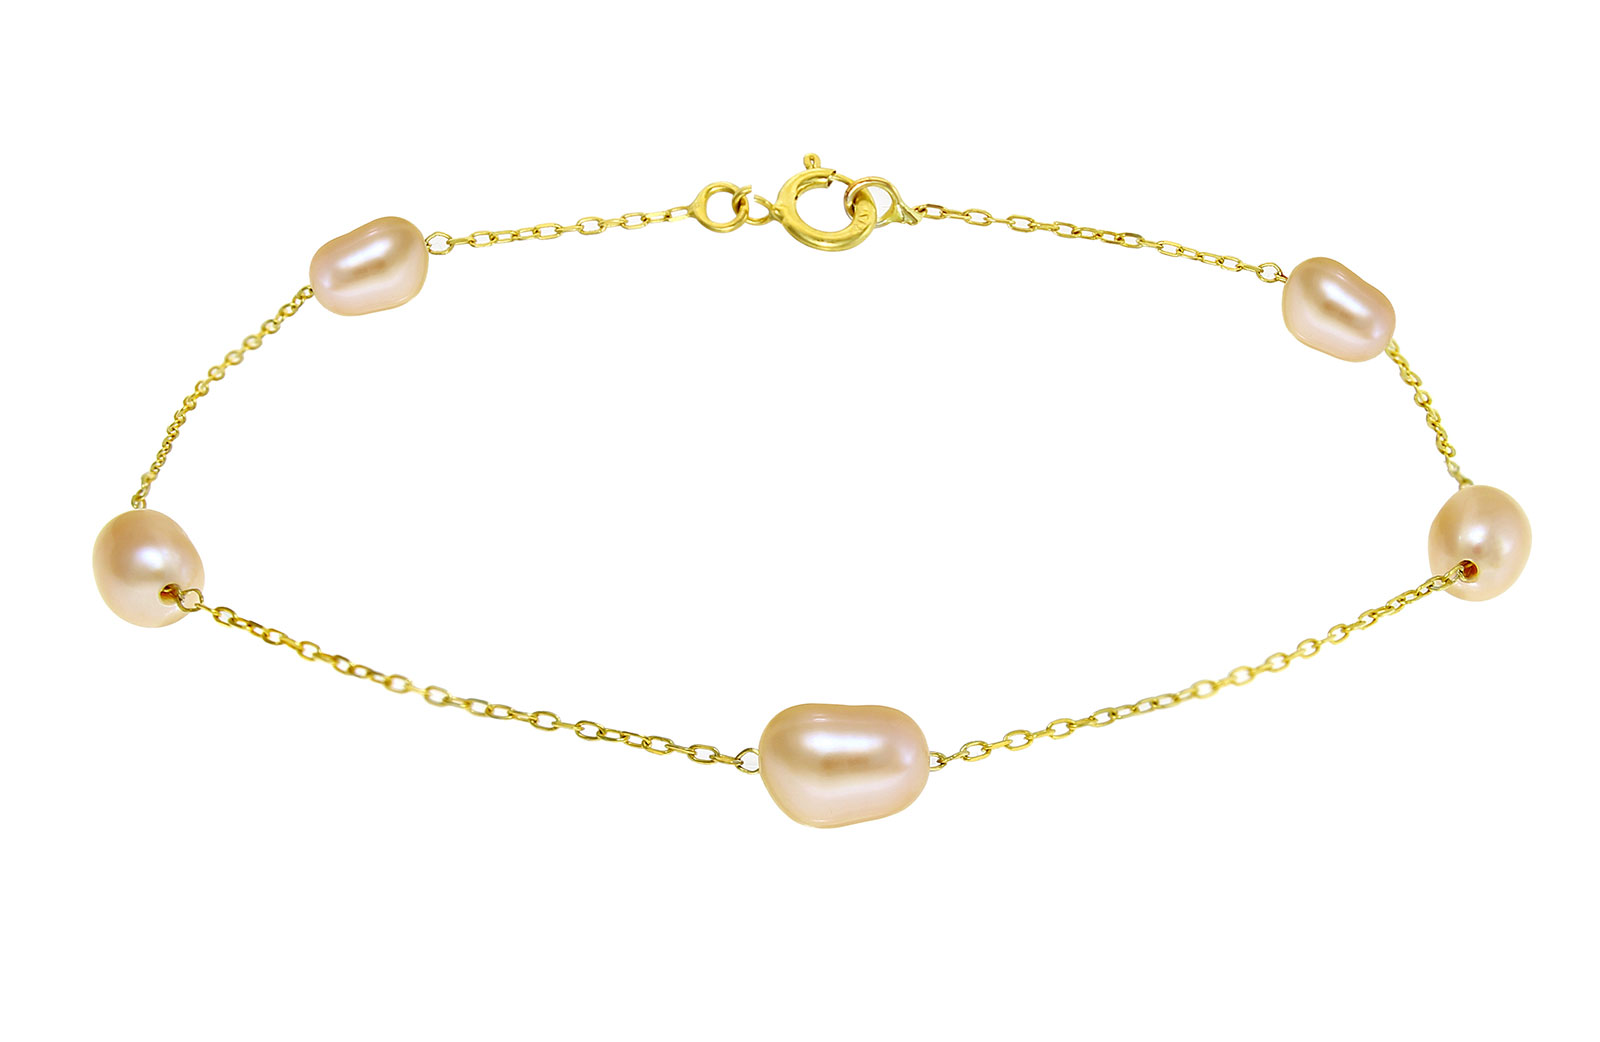 Vera Perla 10k Solid Gold and Pink Color Genuine Pearls Bracelet